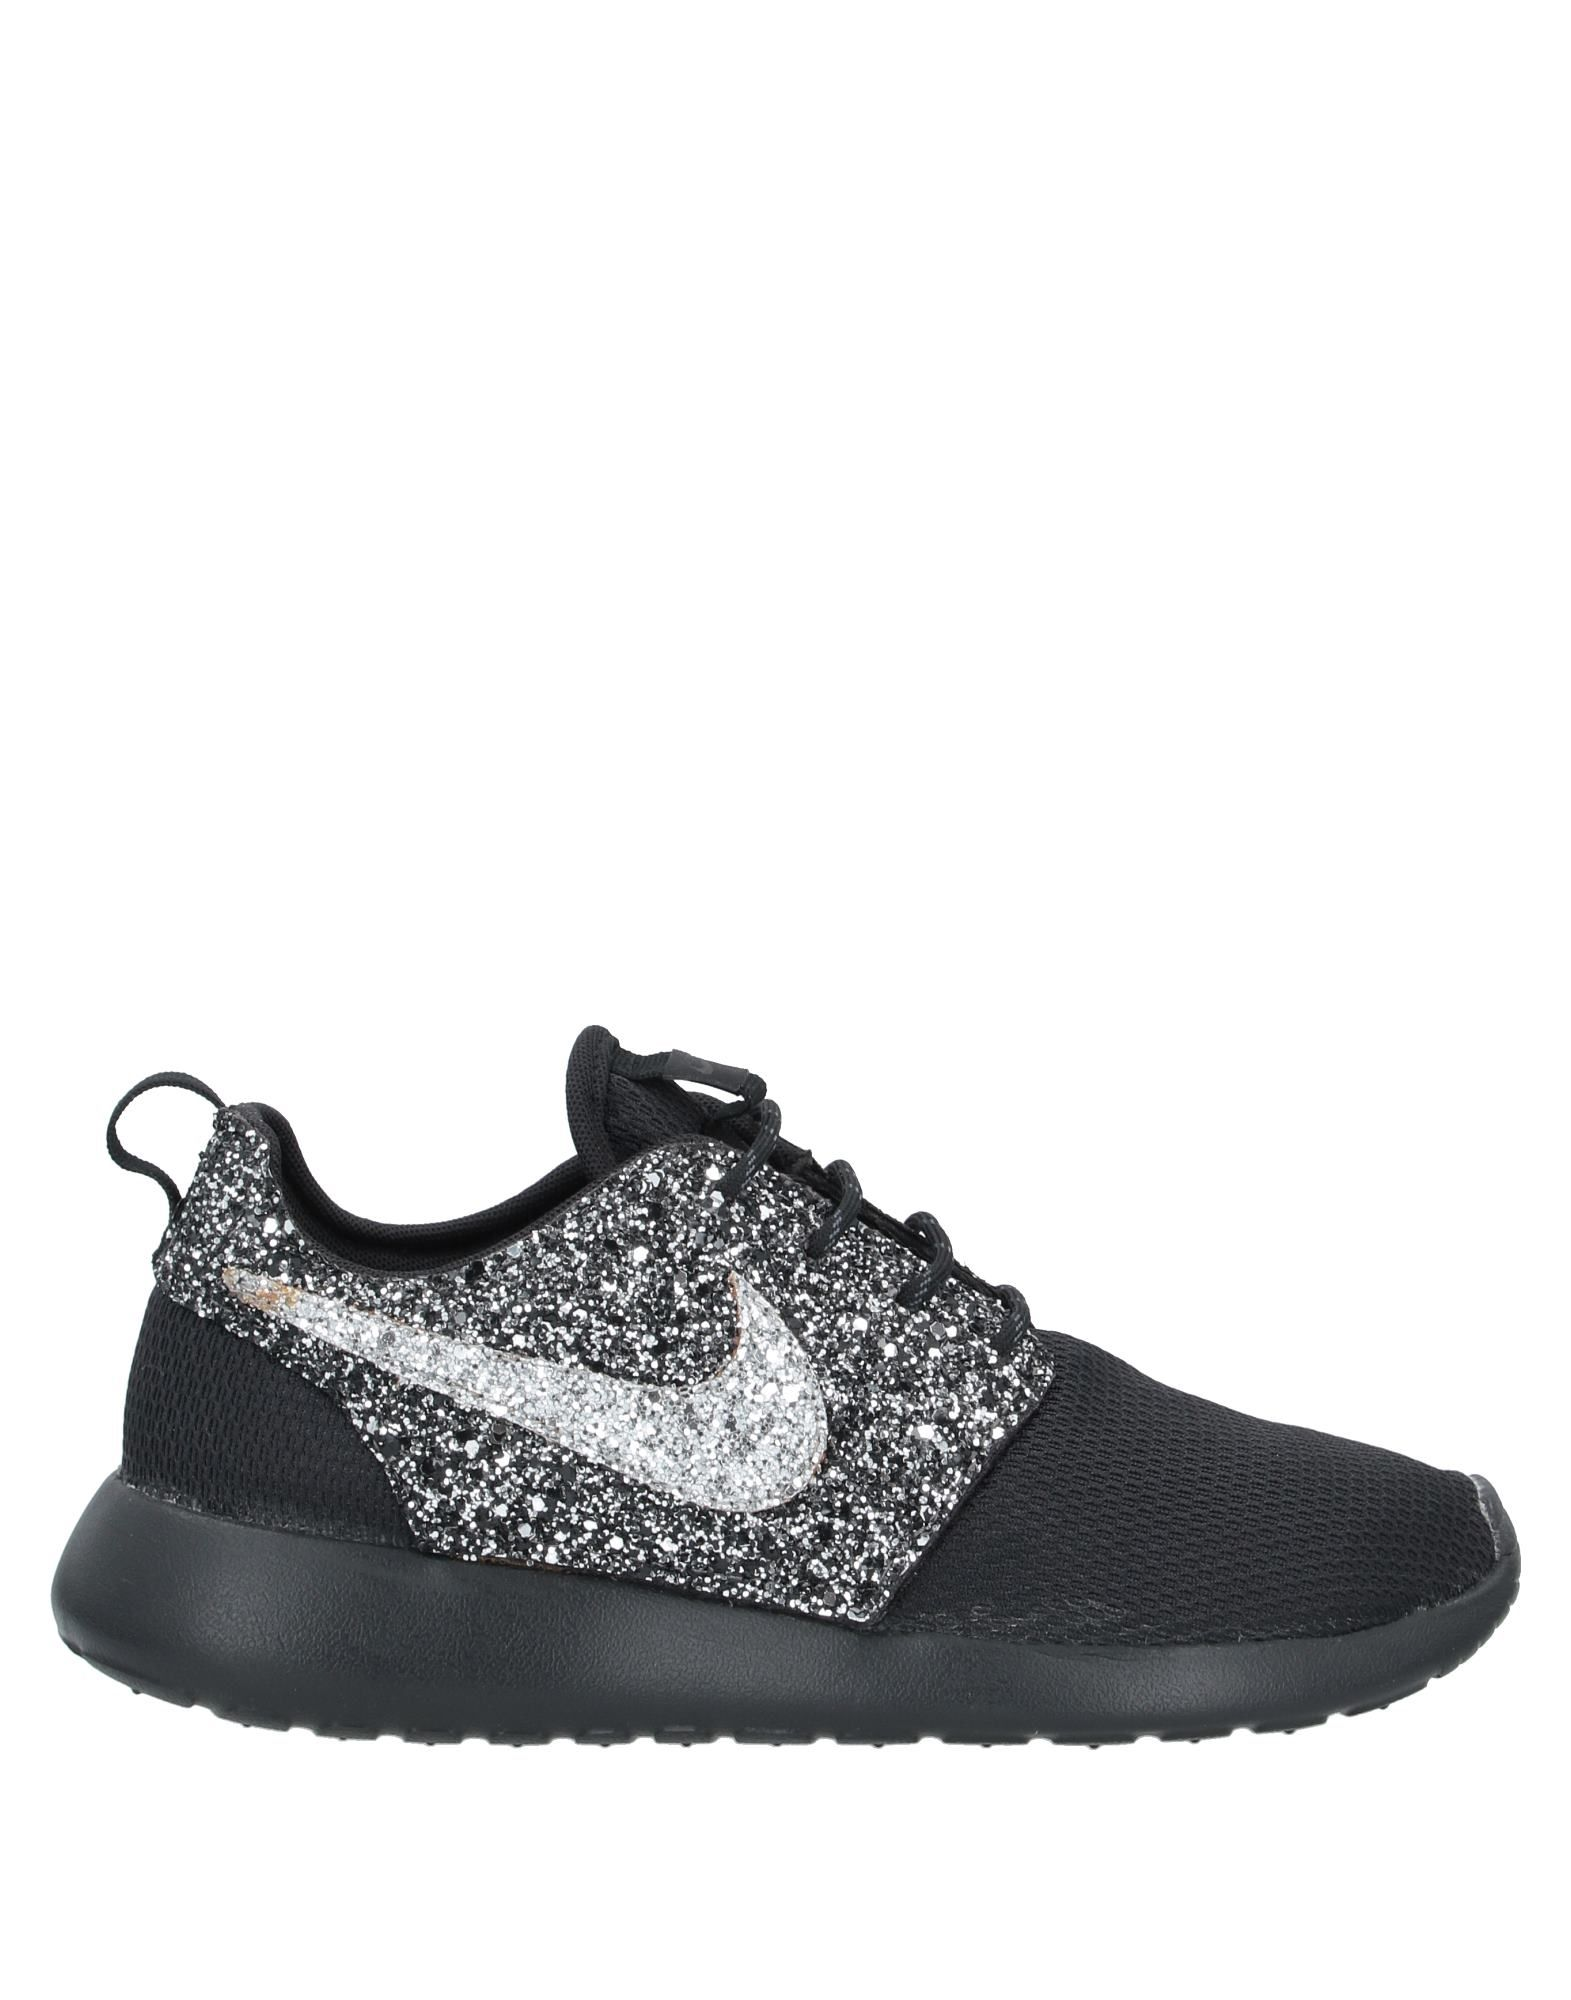 glitter, logo, solid color, laces, round toeline, flat, unlined, rubber sole.